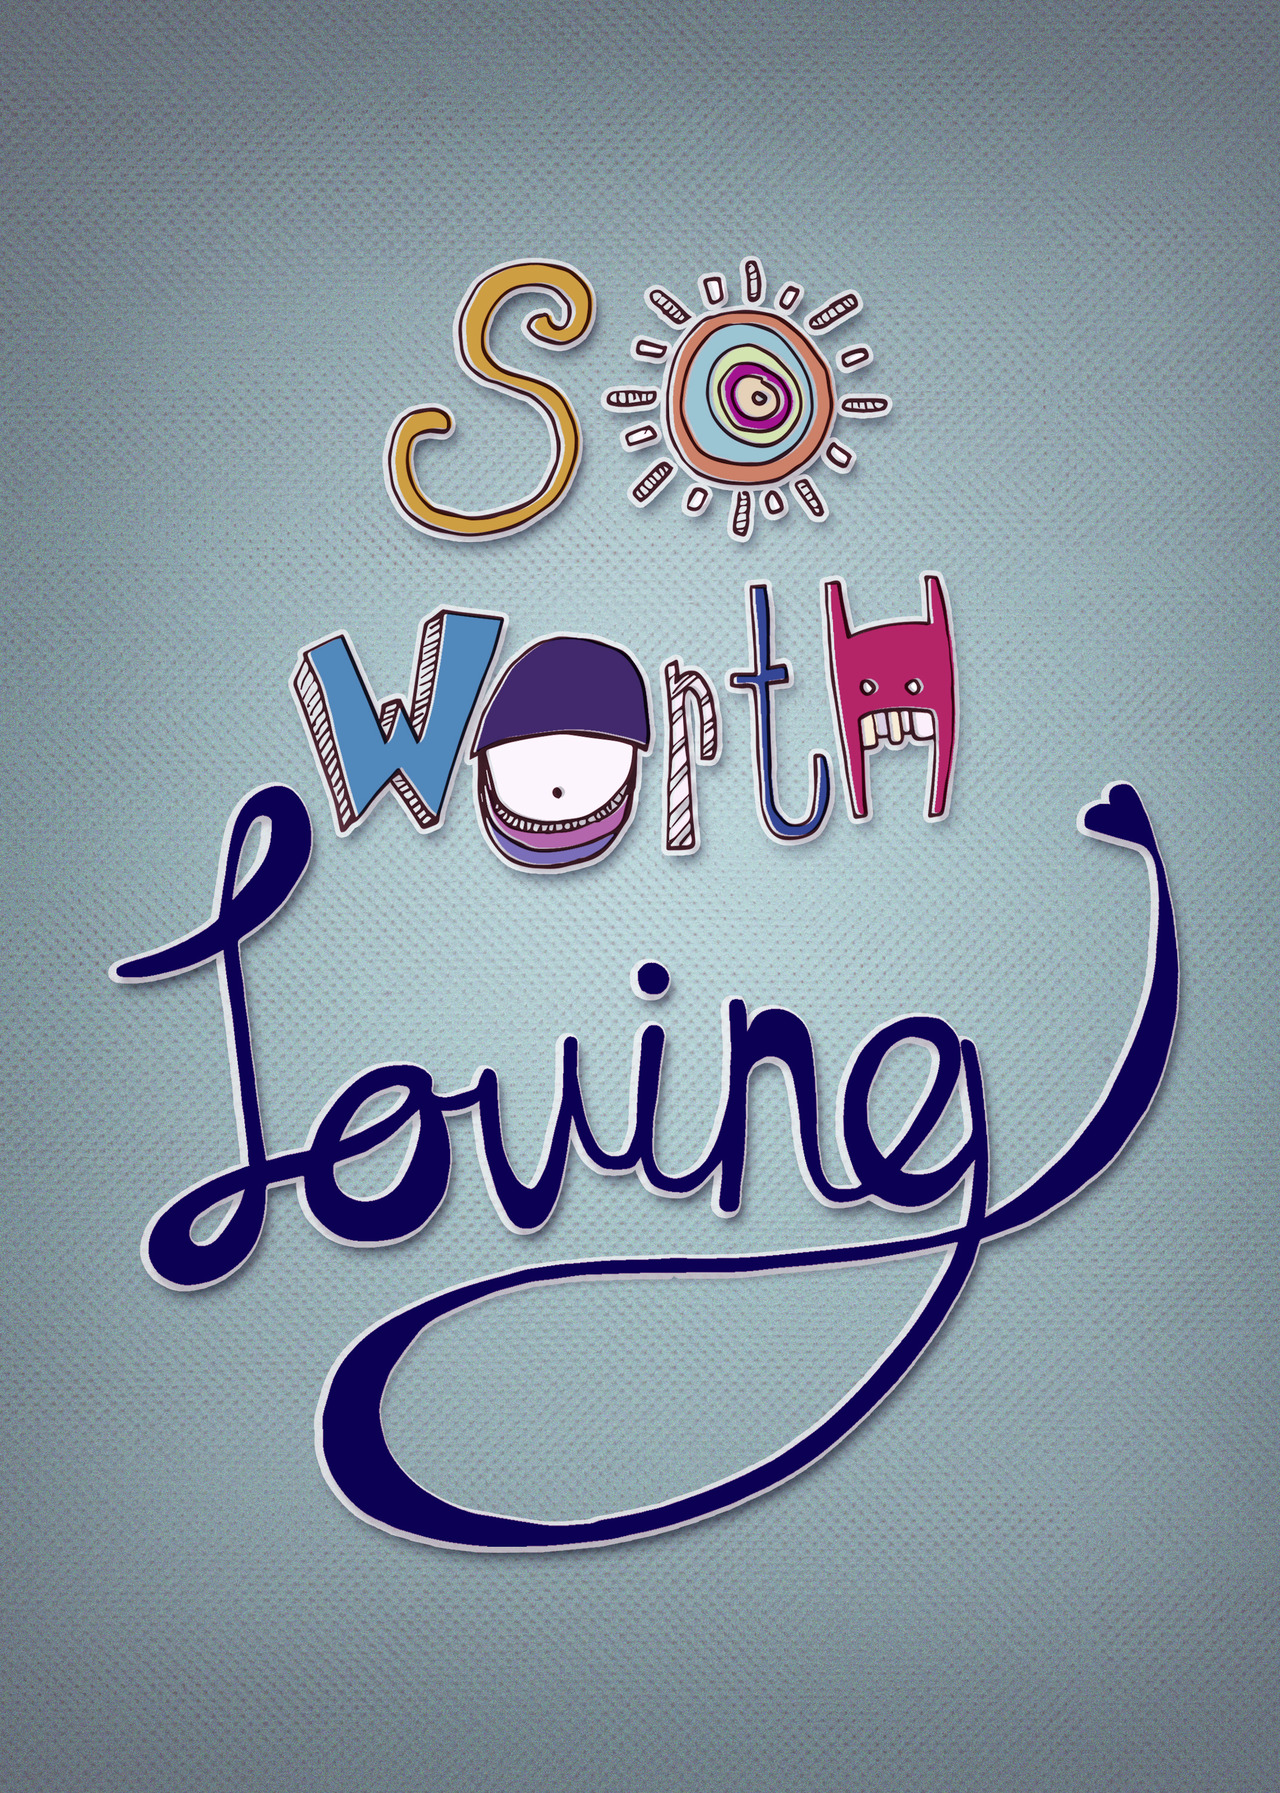 """trishgarcia :     I've been following So Worth Loving  for quite some time now and love what they do. Inspired by there mission I wanted to show myappreciationwith a SWL illustration. Hope you enjoy!"""" So Worth Loving is a community of people dedicated to spreading that message and helping empower people to pursue their dreams."""" - SWL  # SoWorthLoving     # SWLFam"""